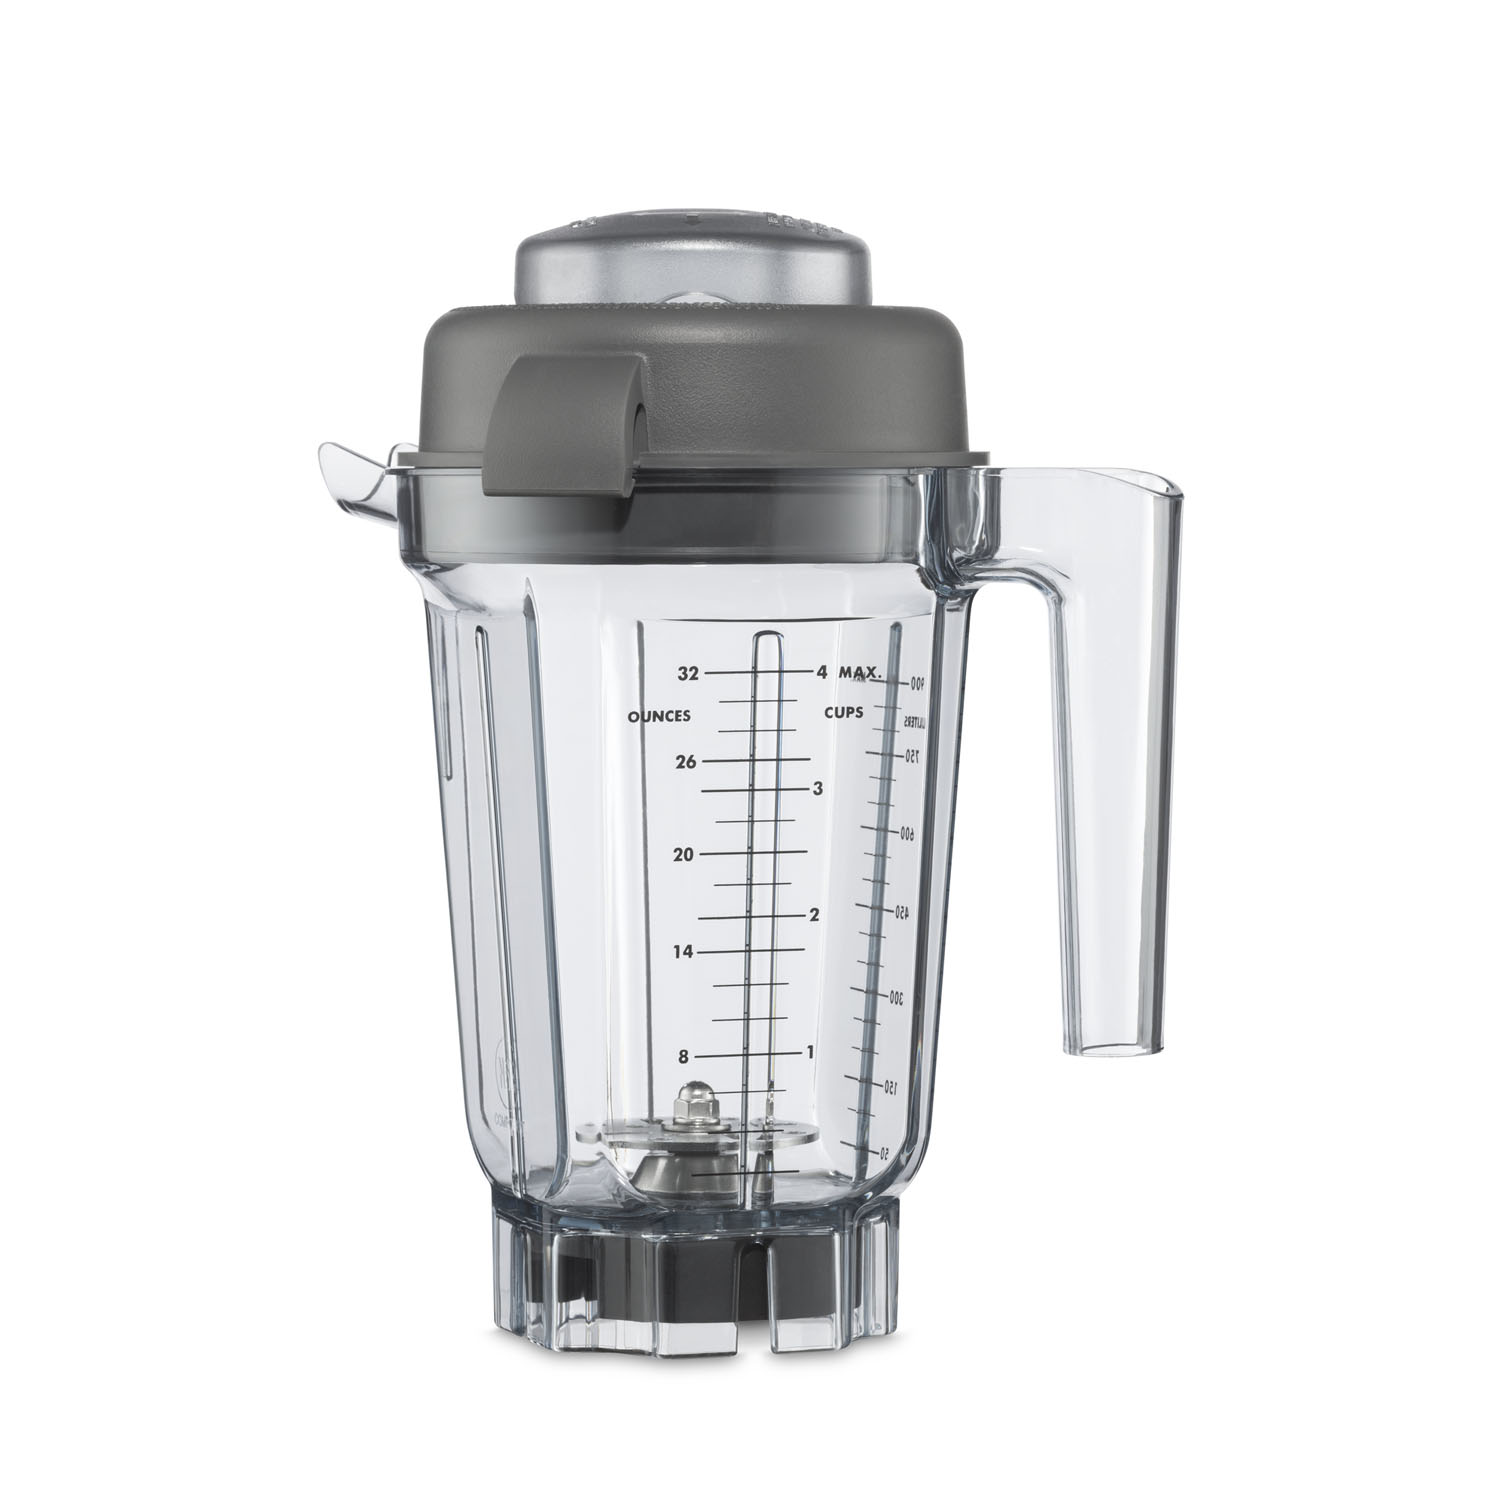 Picture of a Vitamix Aerating Container